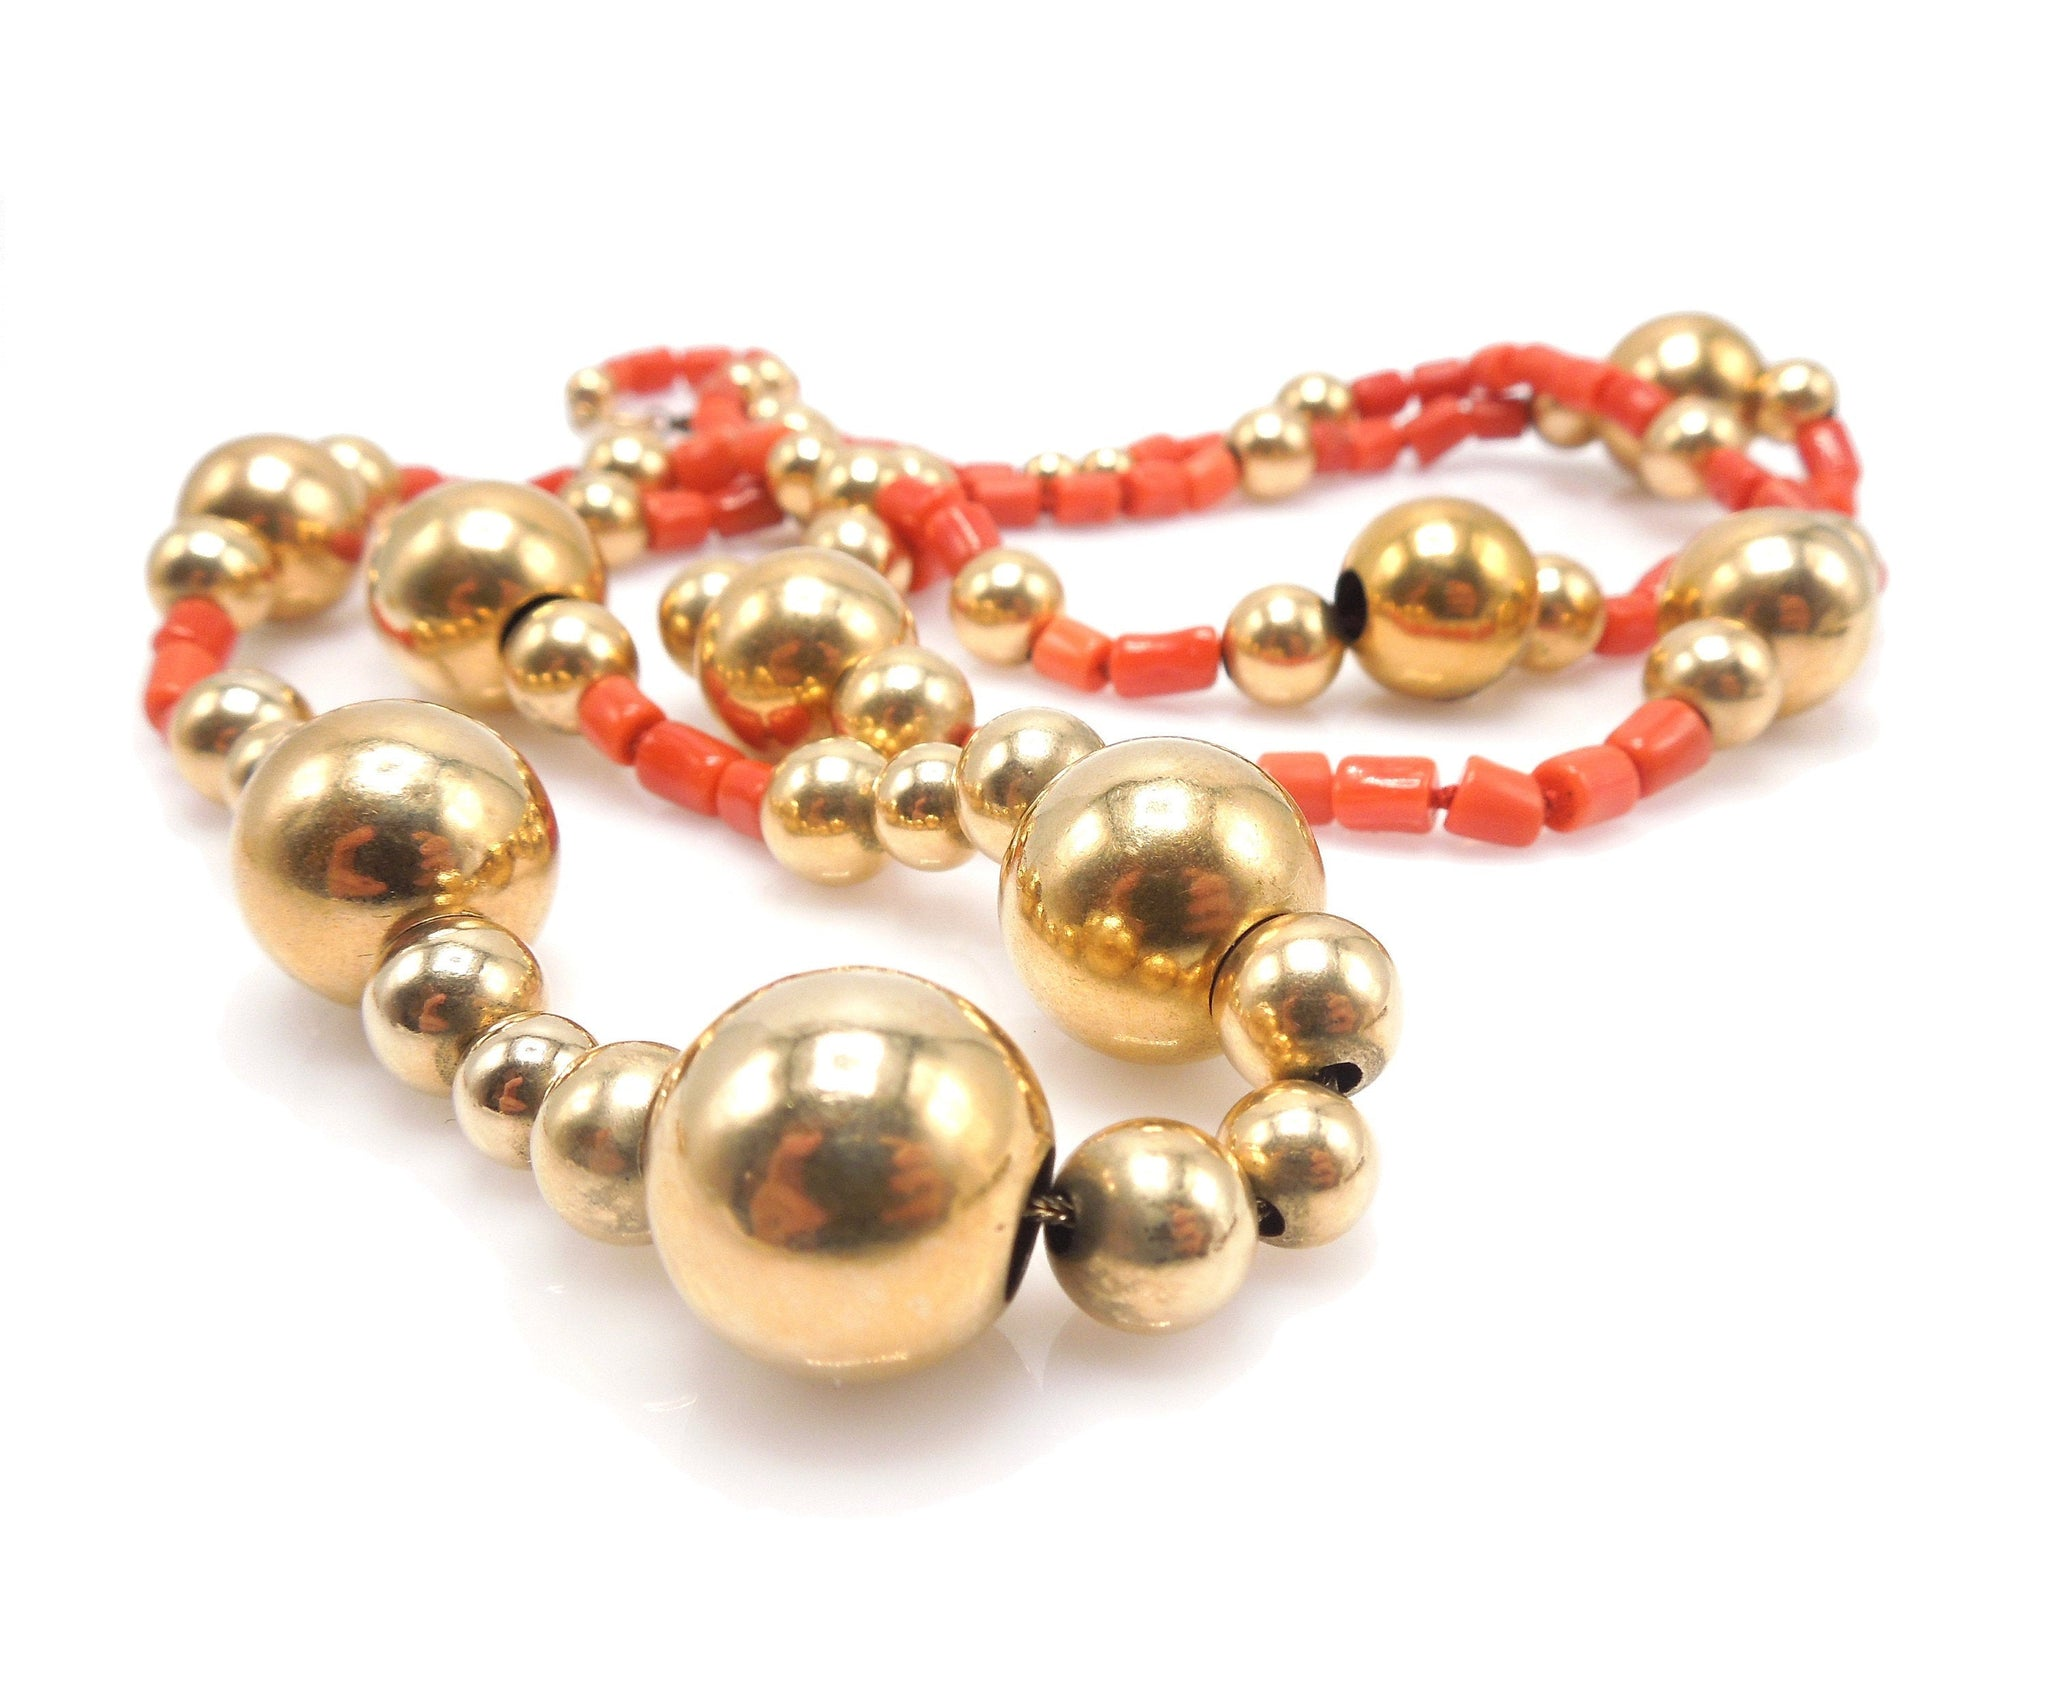 Vintage 14K Yellow Gold and Coral Bead Necklace - 36-inch Long Single Strand